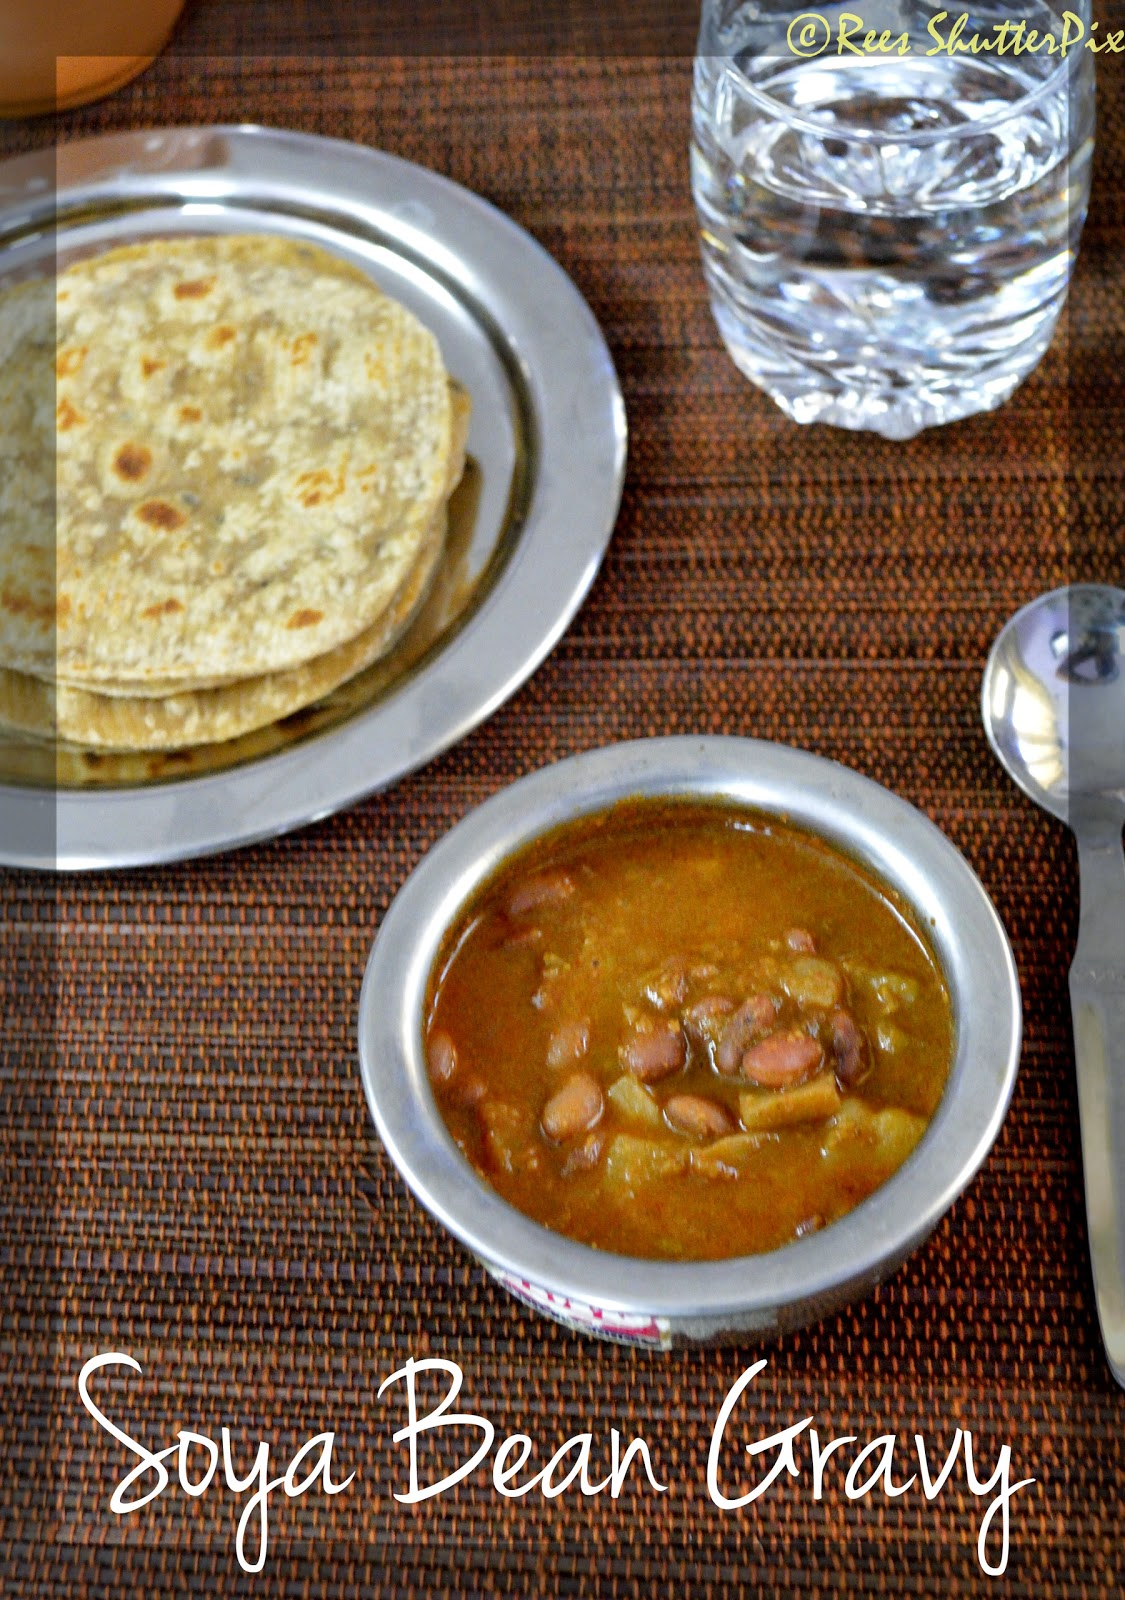 how to make soya beans gravy at home, easy soya beans recipe